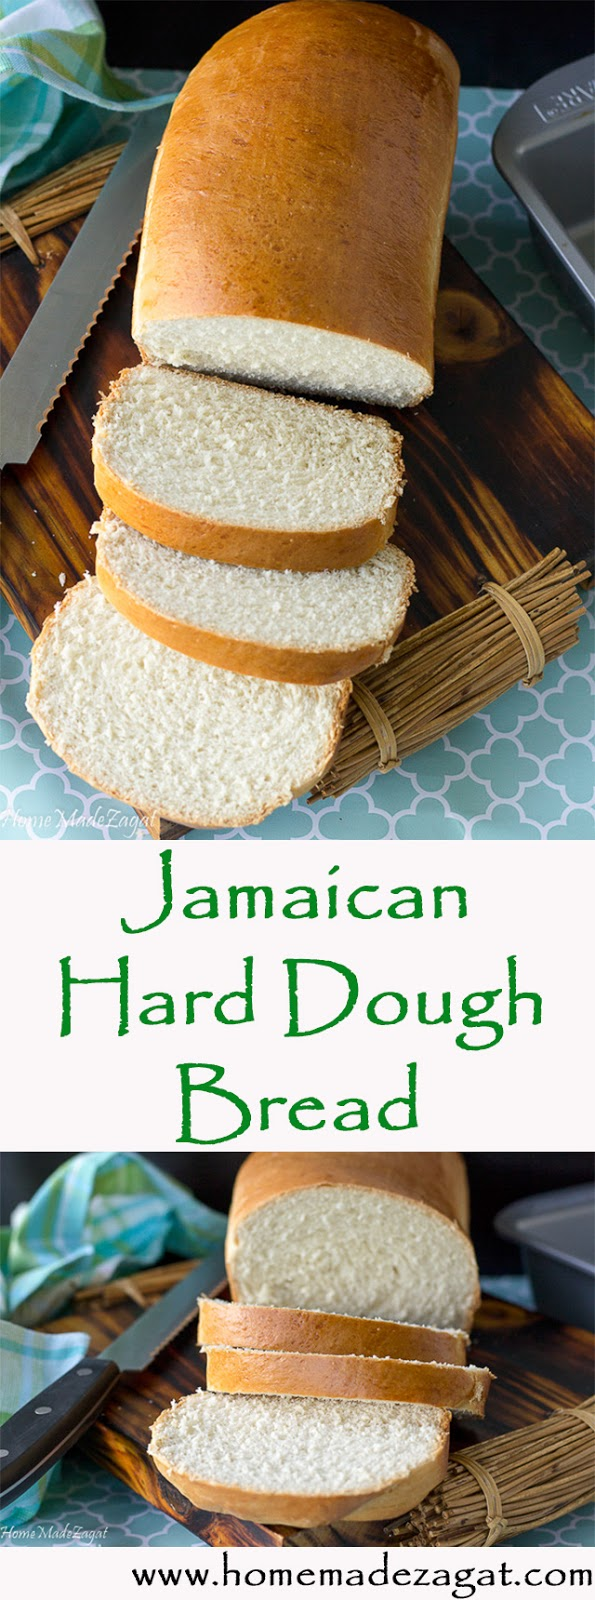 Recipe for Hard Dough Bread